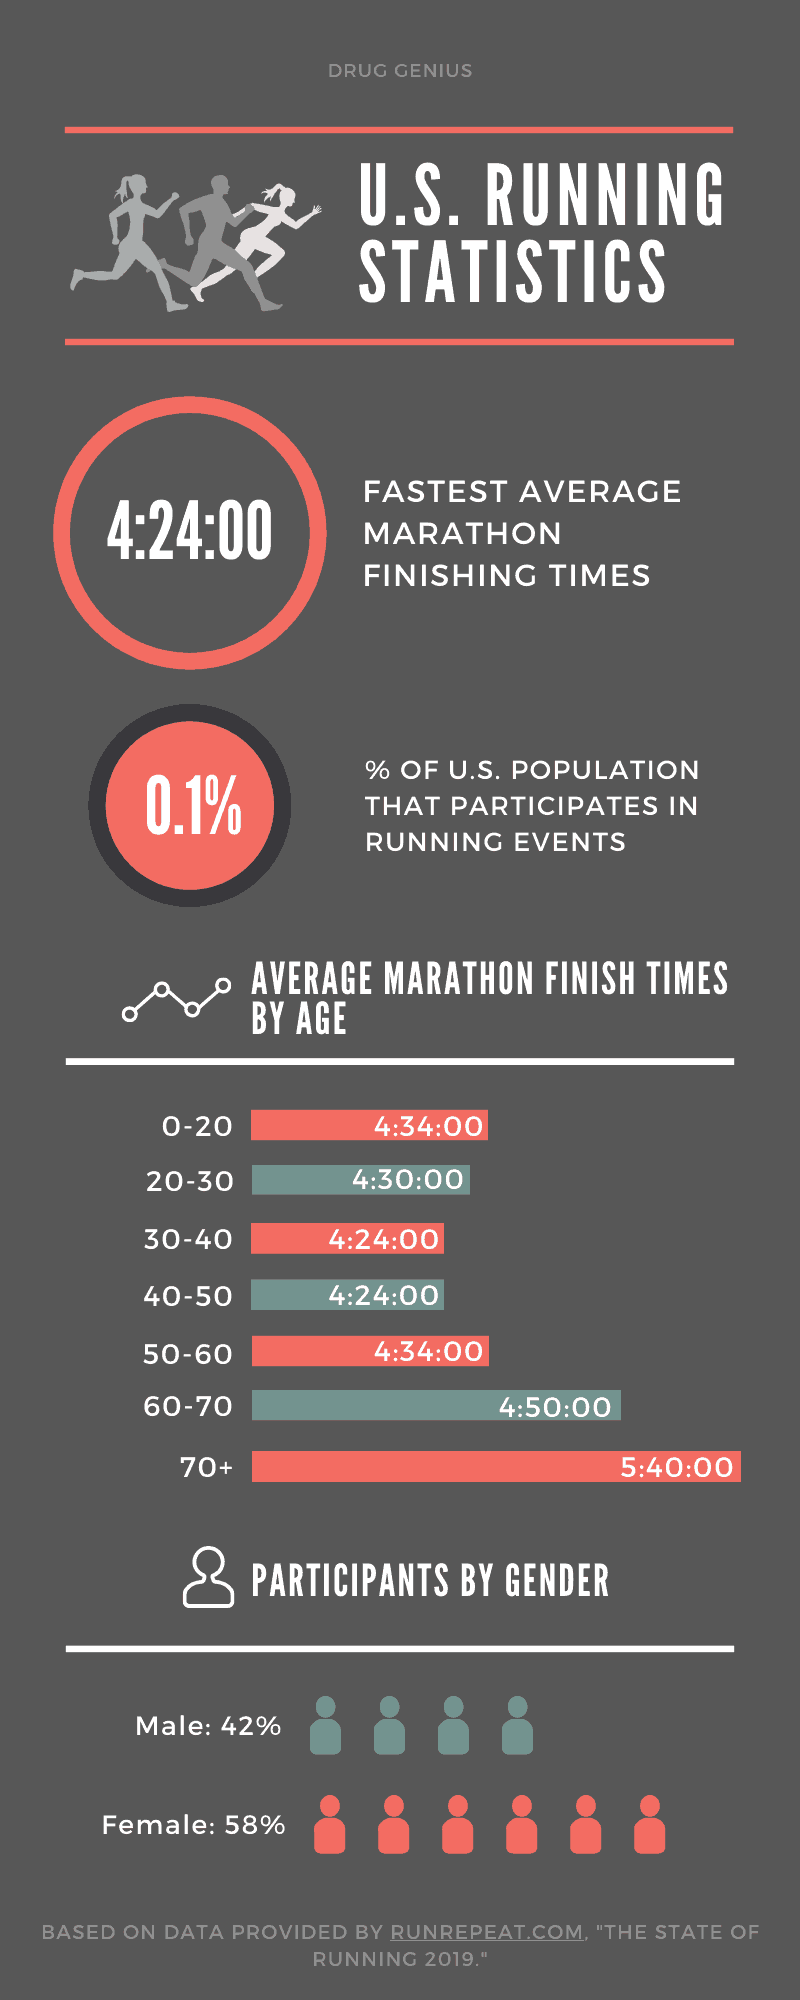 Infographic on statistics of running and runners in the United States.